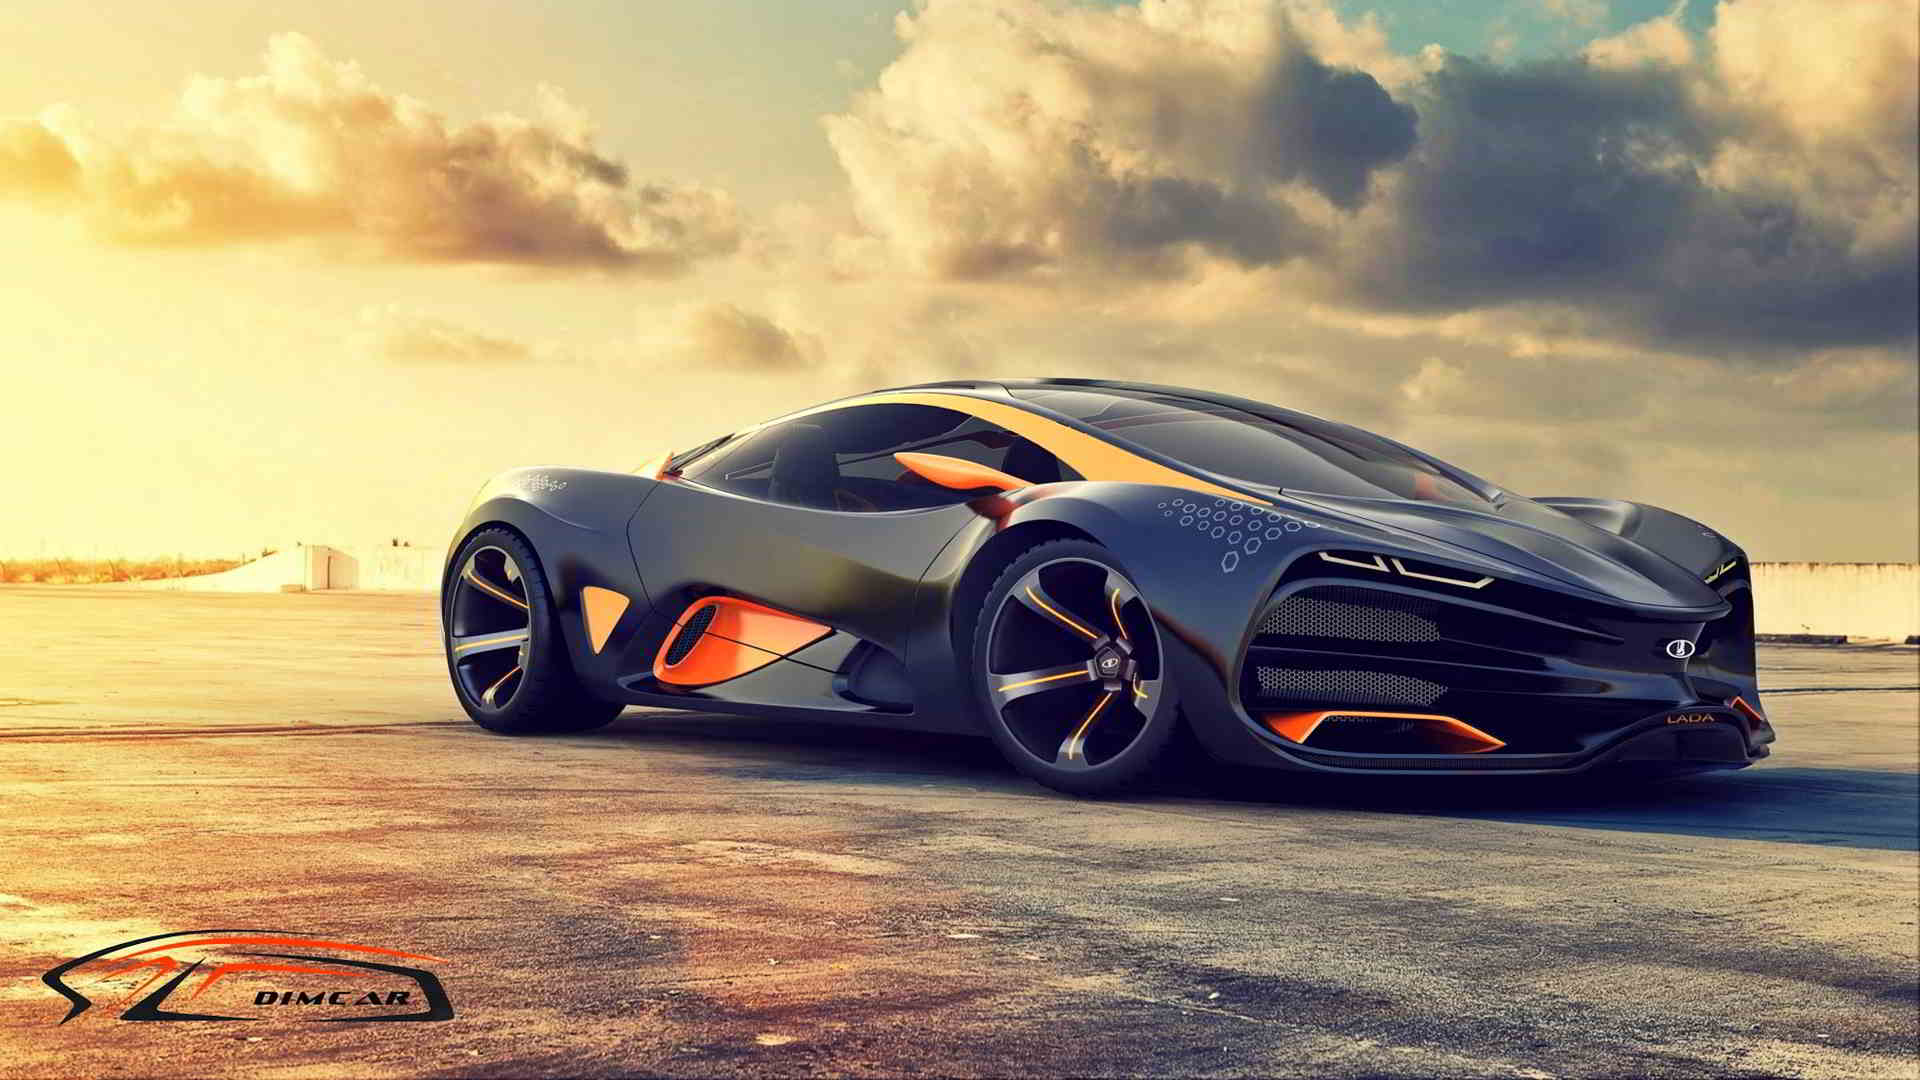 Free Download 46 Full Hd Cool Car Wallpapers That Look Amazing Download 1920x1080 For Your Desktop Mobile Tablet Explore 63 Wallpaper Of Sports Cars Muscle Car Wallpaper Sports Cars